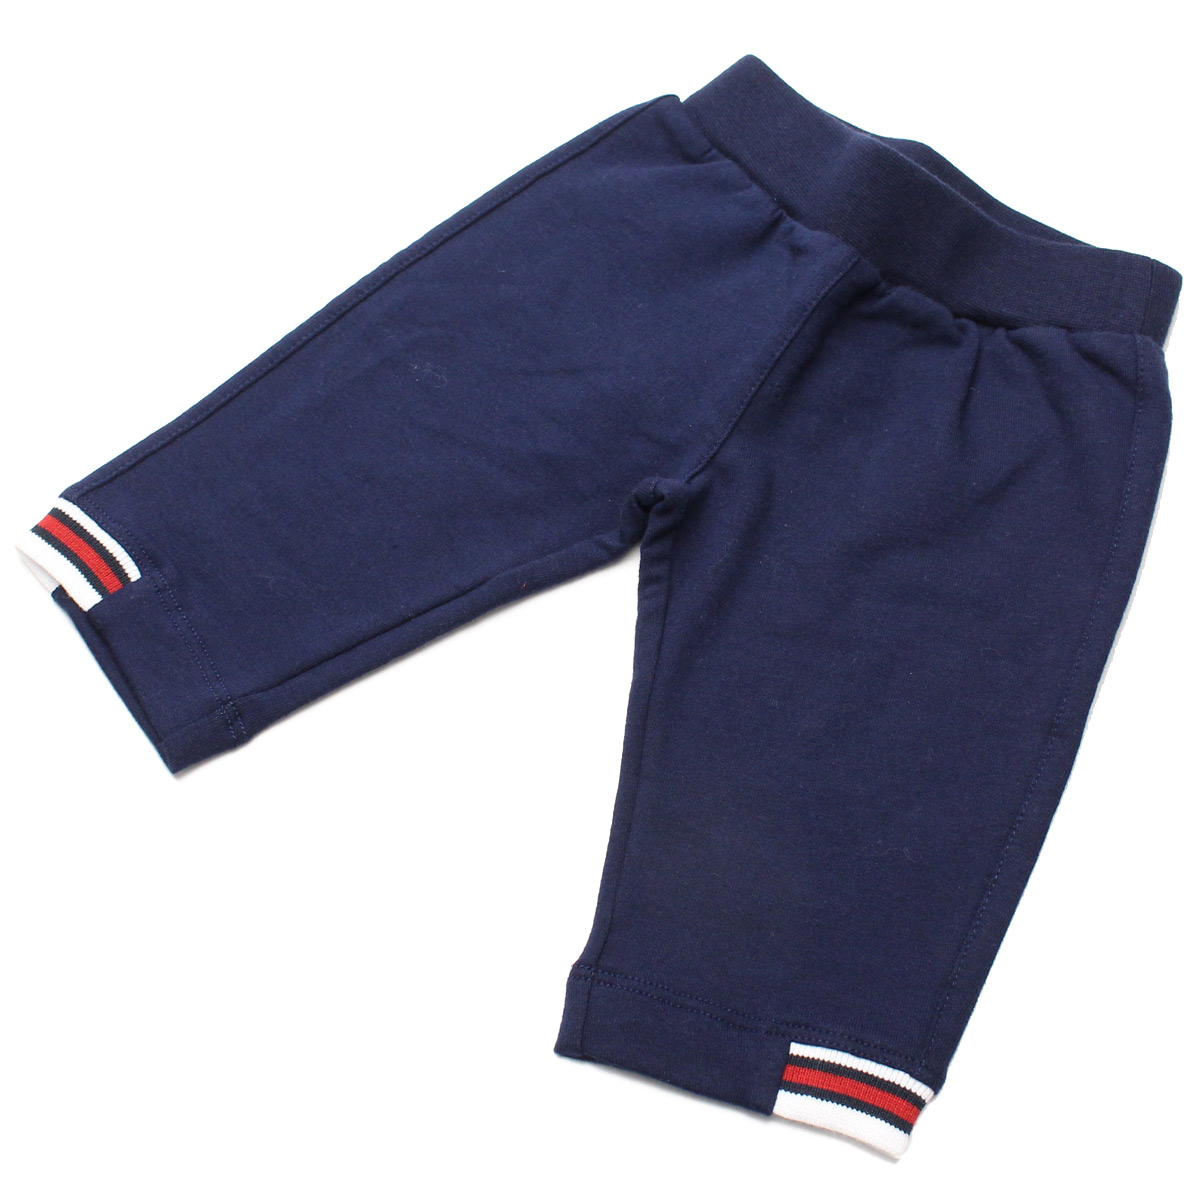 bcea950aac7cb6 Bighit The total brand wholesale  Gucci (GUCCI) baby bottoms 378046 X 5650  4057 Navy( taxfree send by EMS authentic A brand new item )